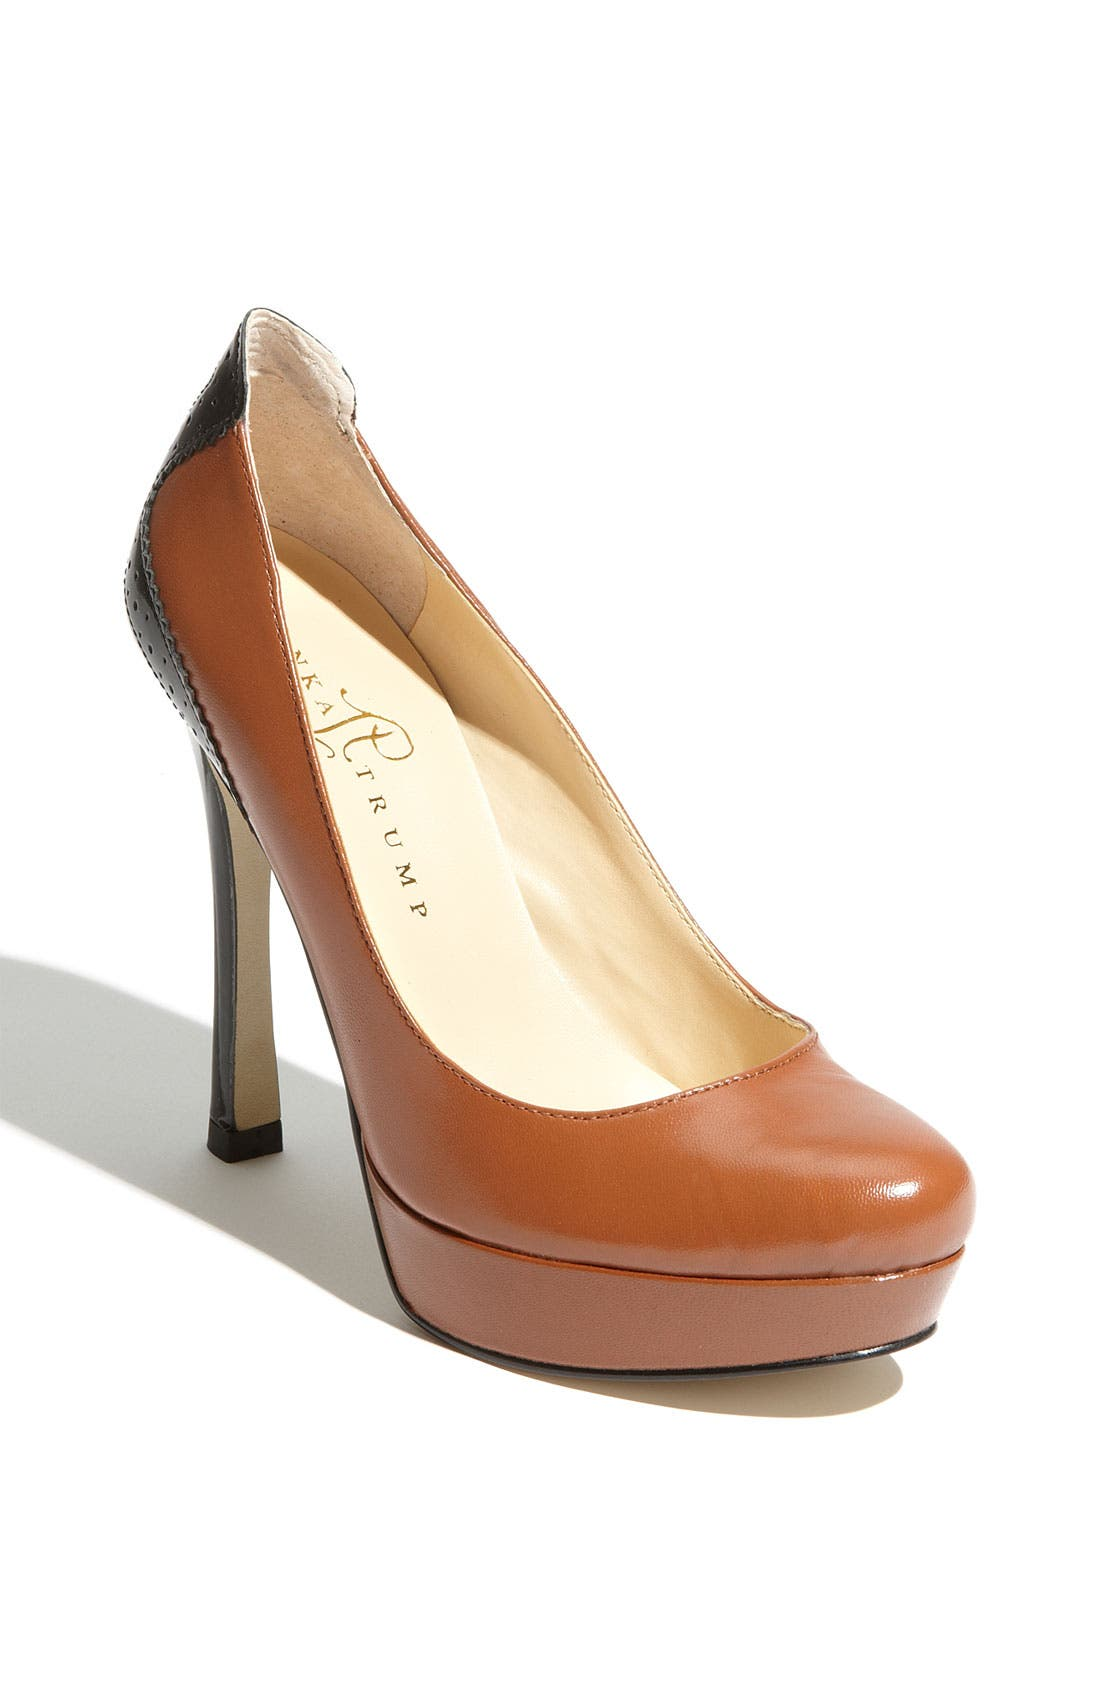 Main Image - Ivanka Trump 'Tesi' Pump